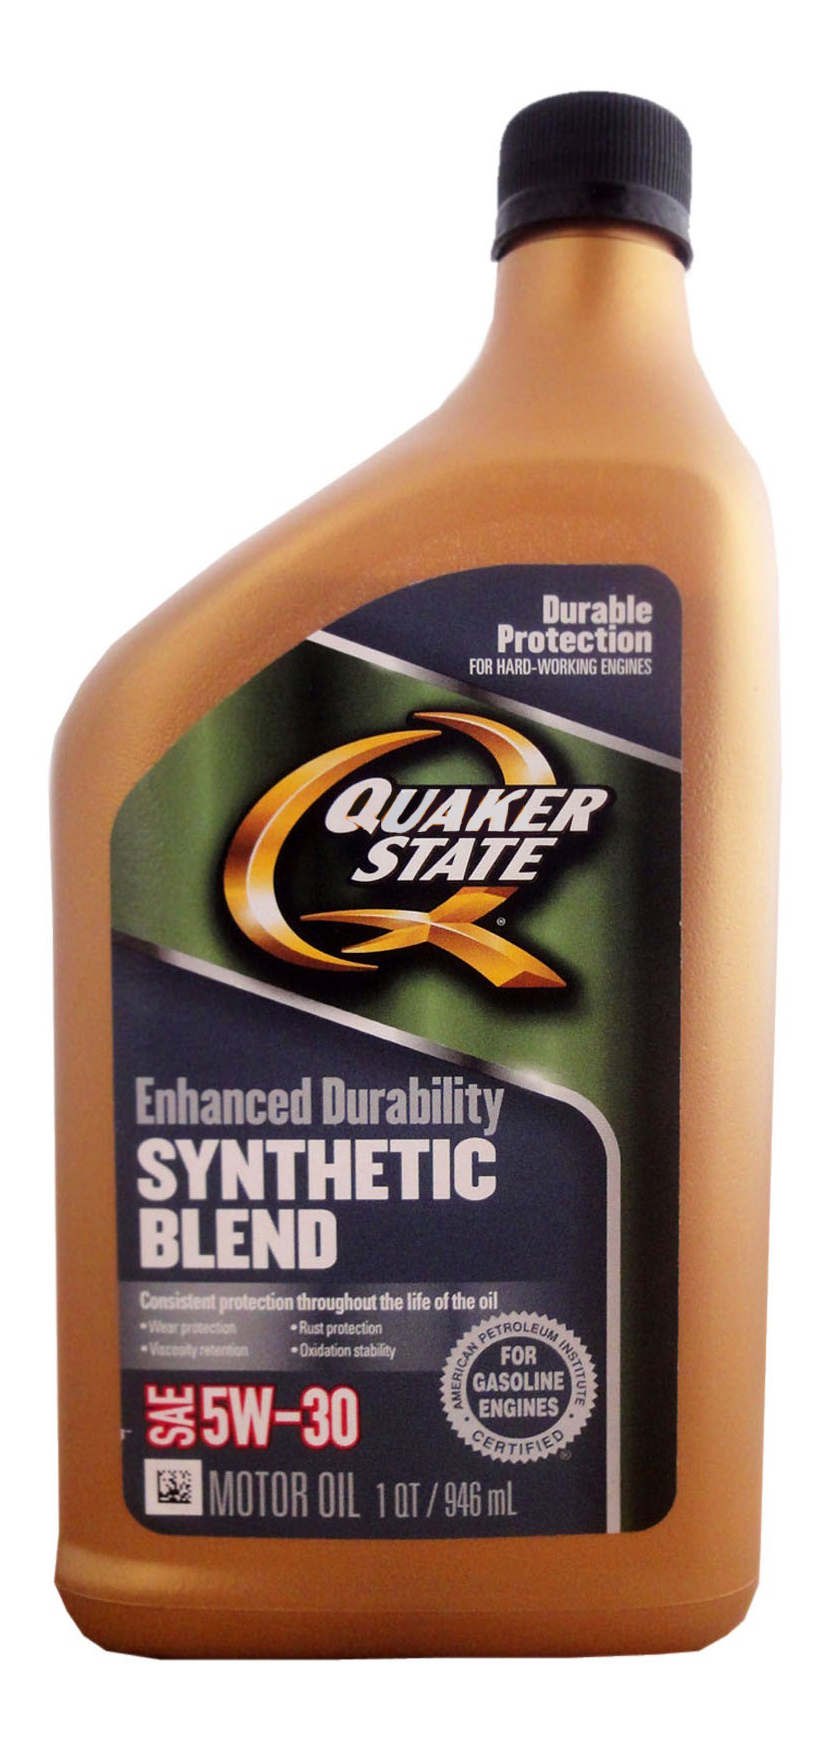 Quaker State Enhanced Durability SAE 5W-30 Synthetic Blend Motor Oil